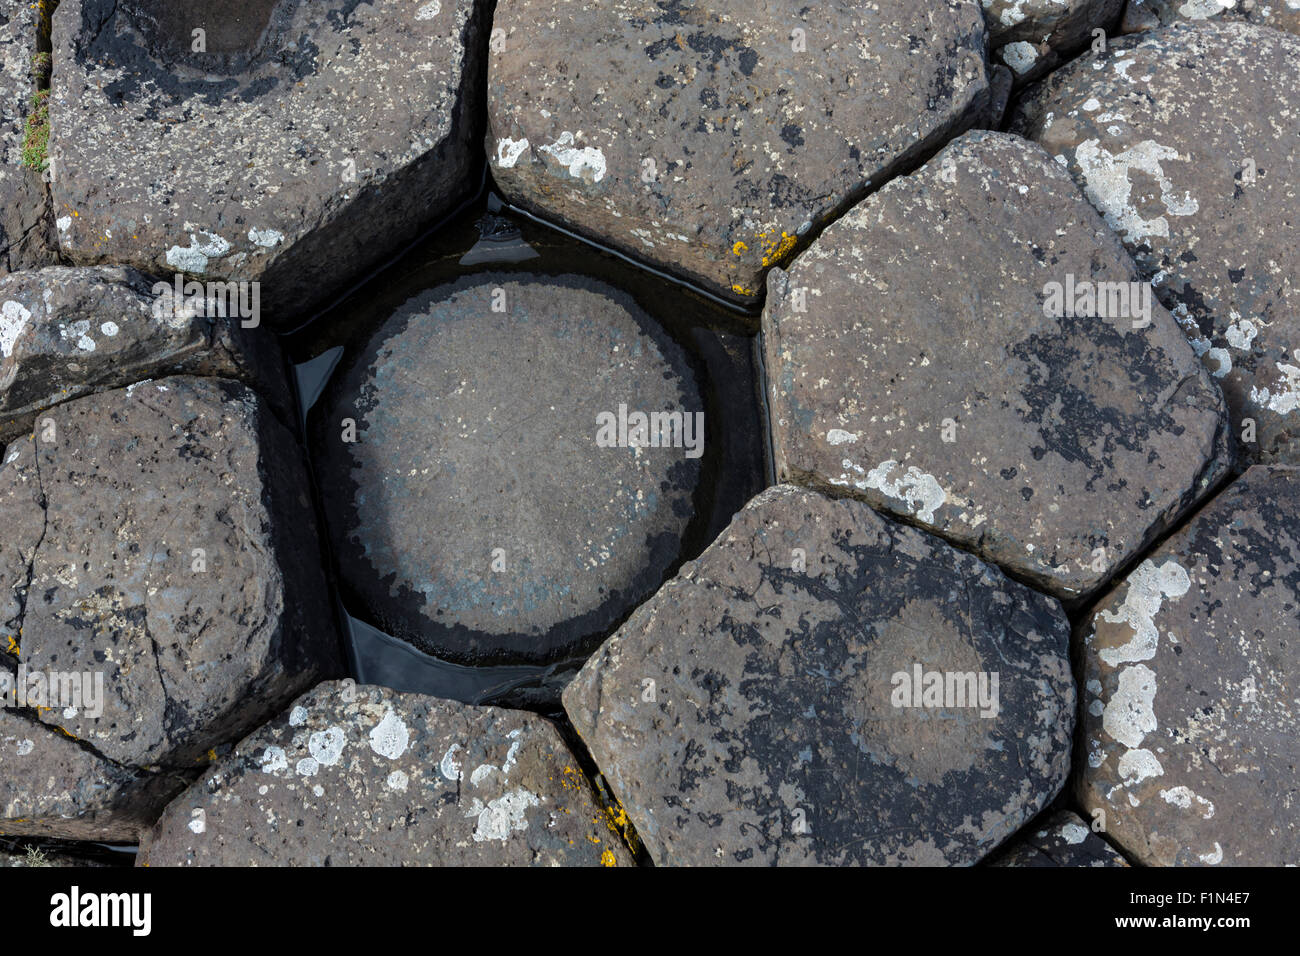 Eroded basalt columns at Giant's Causeway, County Antrim, Northern Ireland - Stock Image